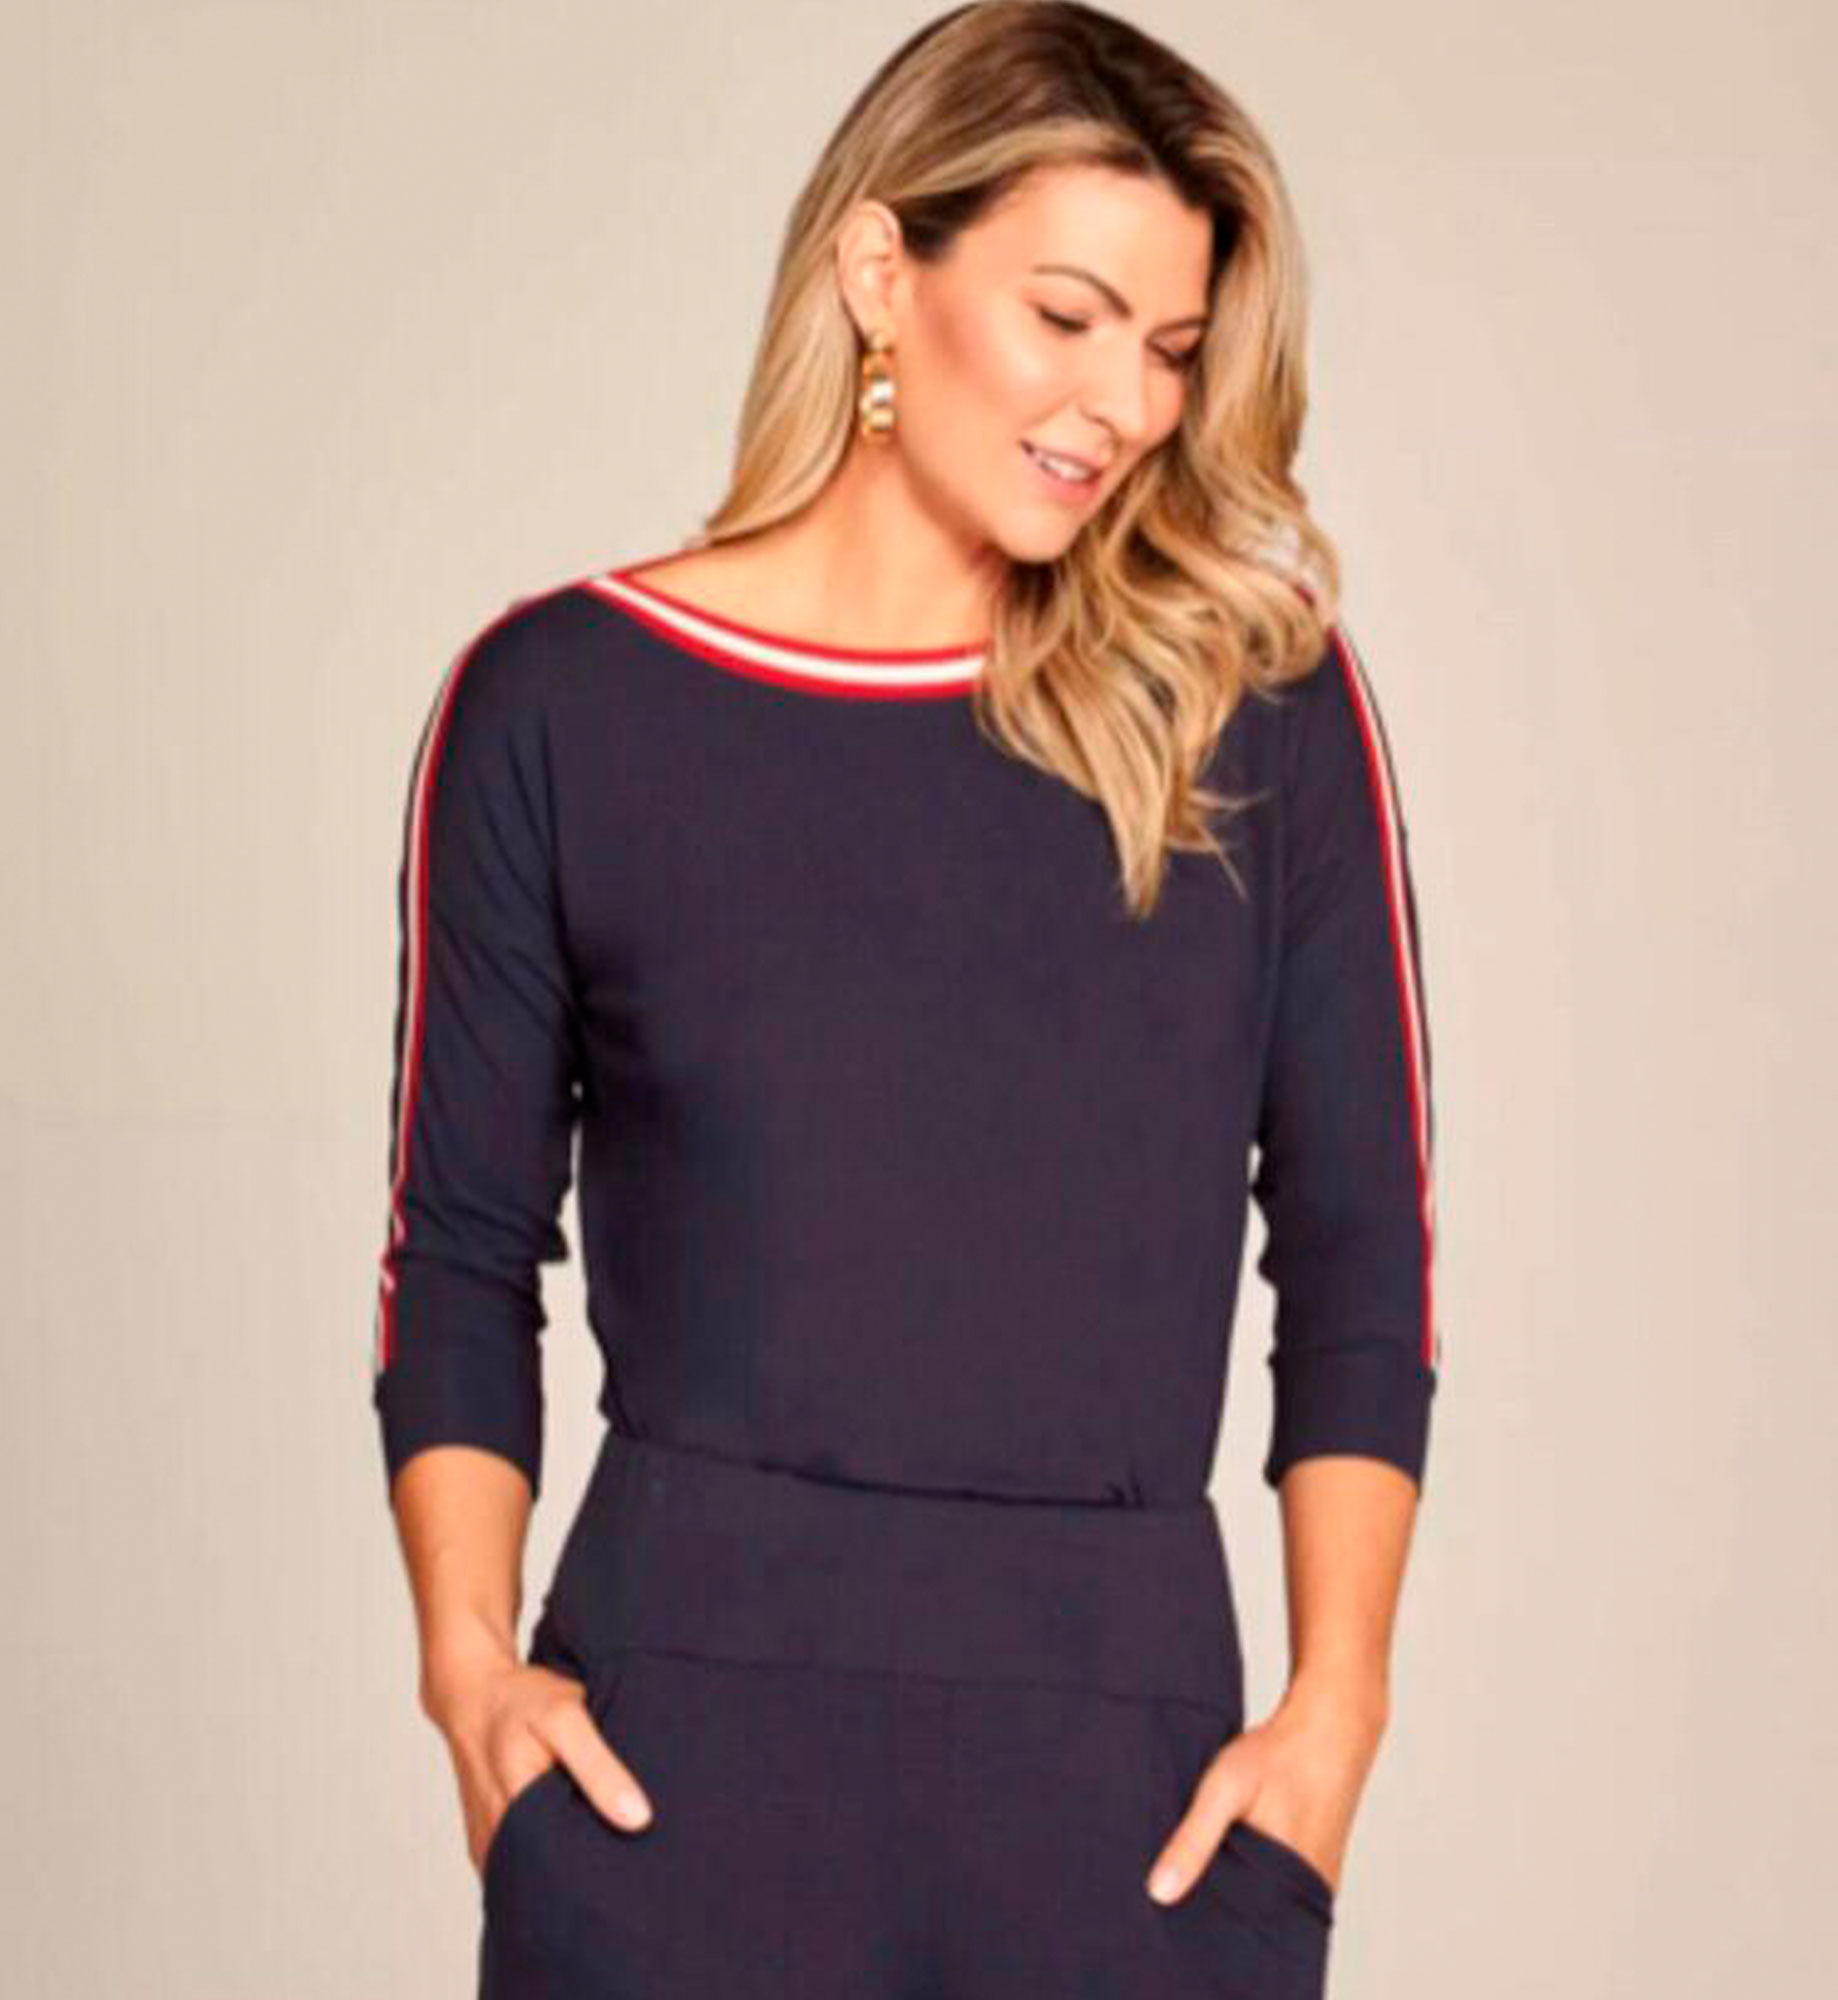 BLUSA VISCO NAVY DEC CANOA MG 3/4